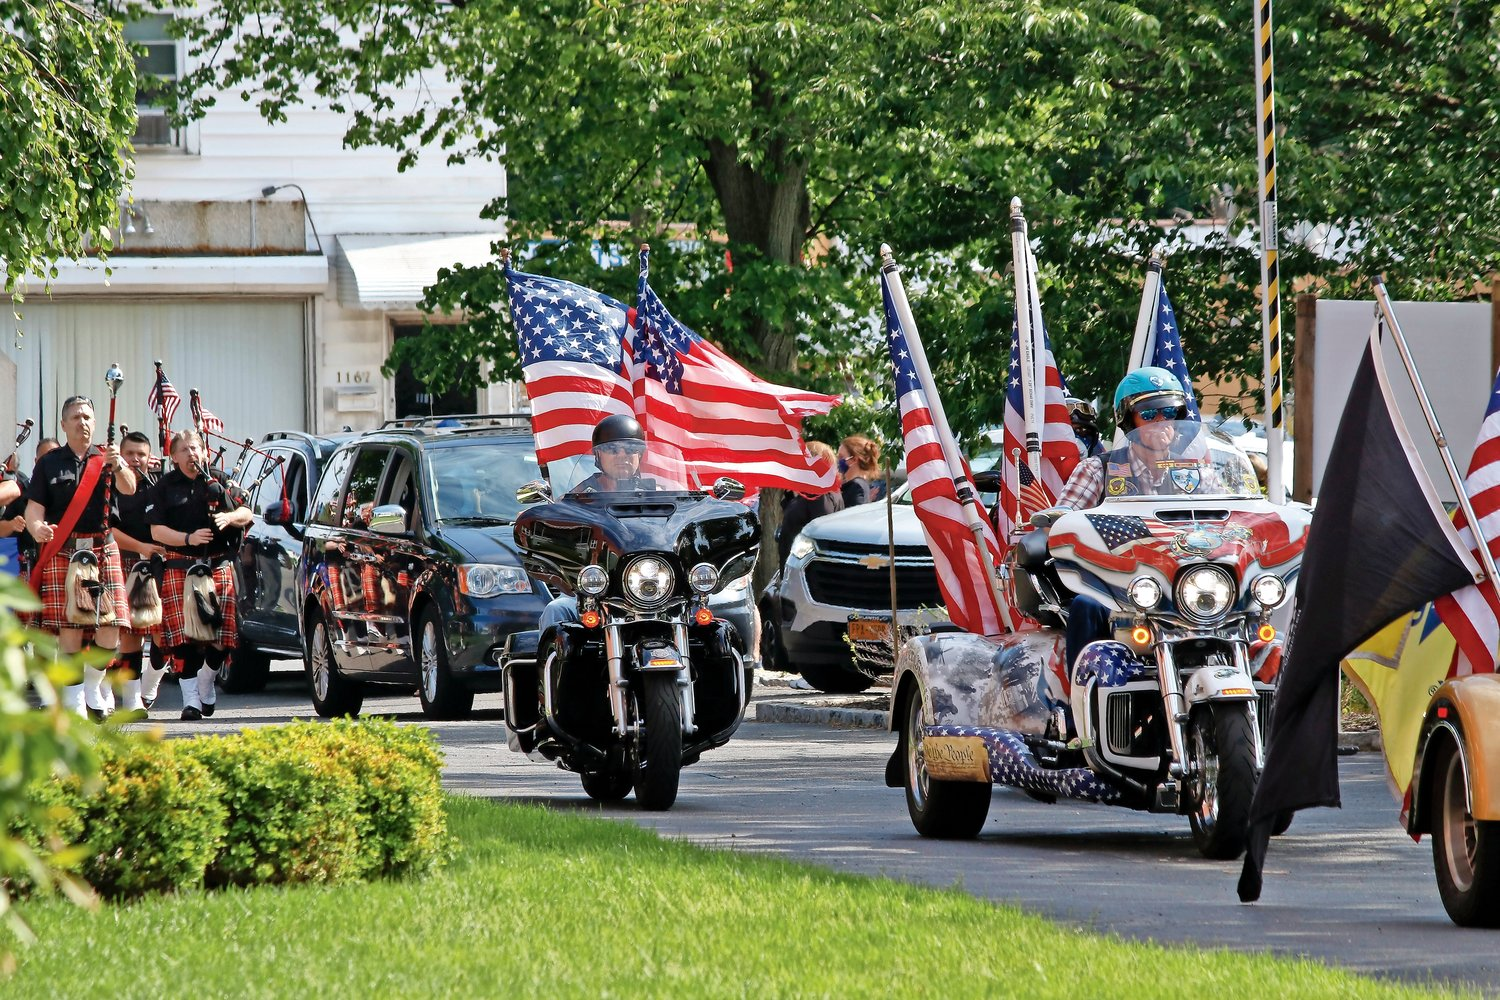 Photos Christina Daly/Herald